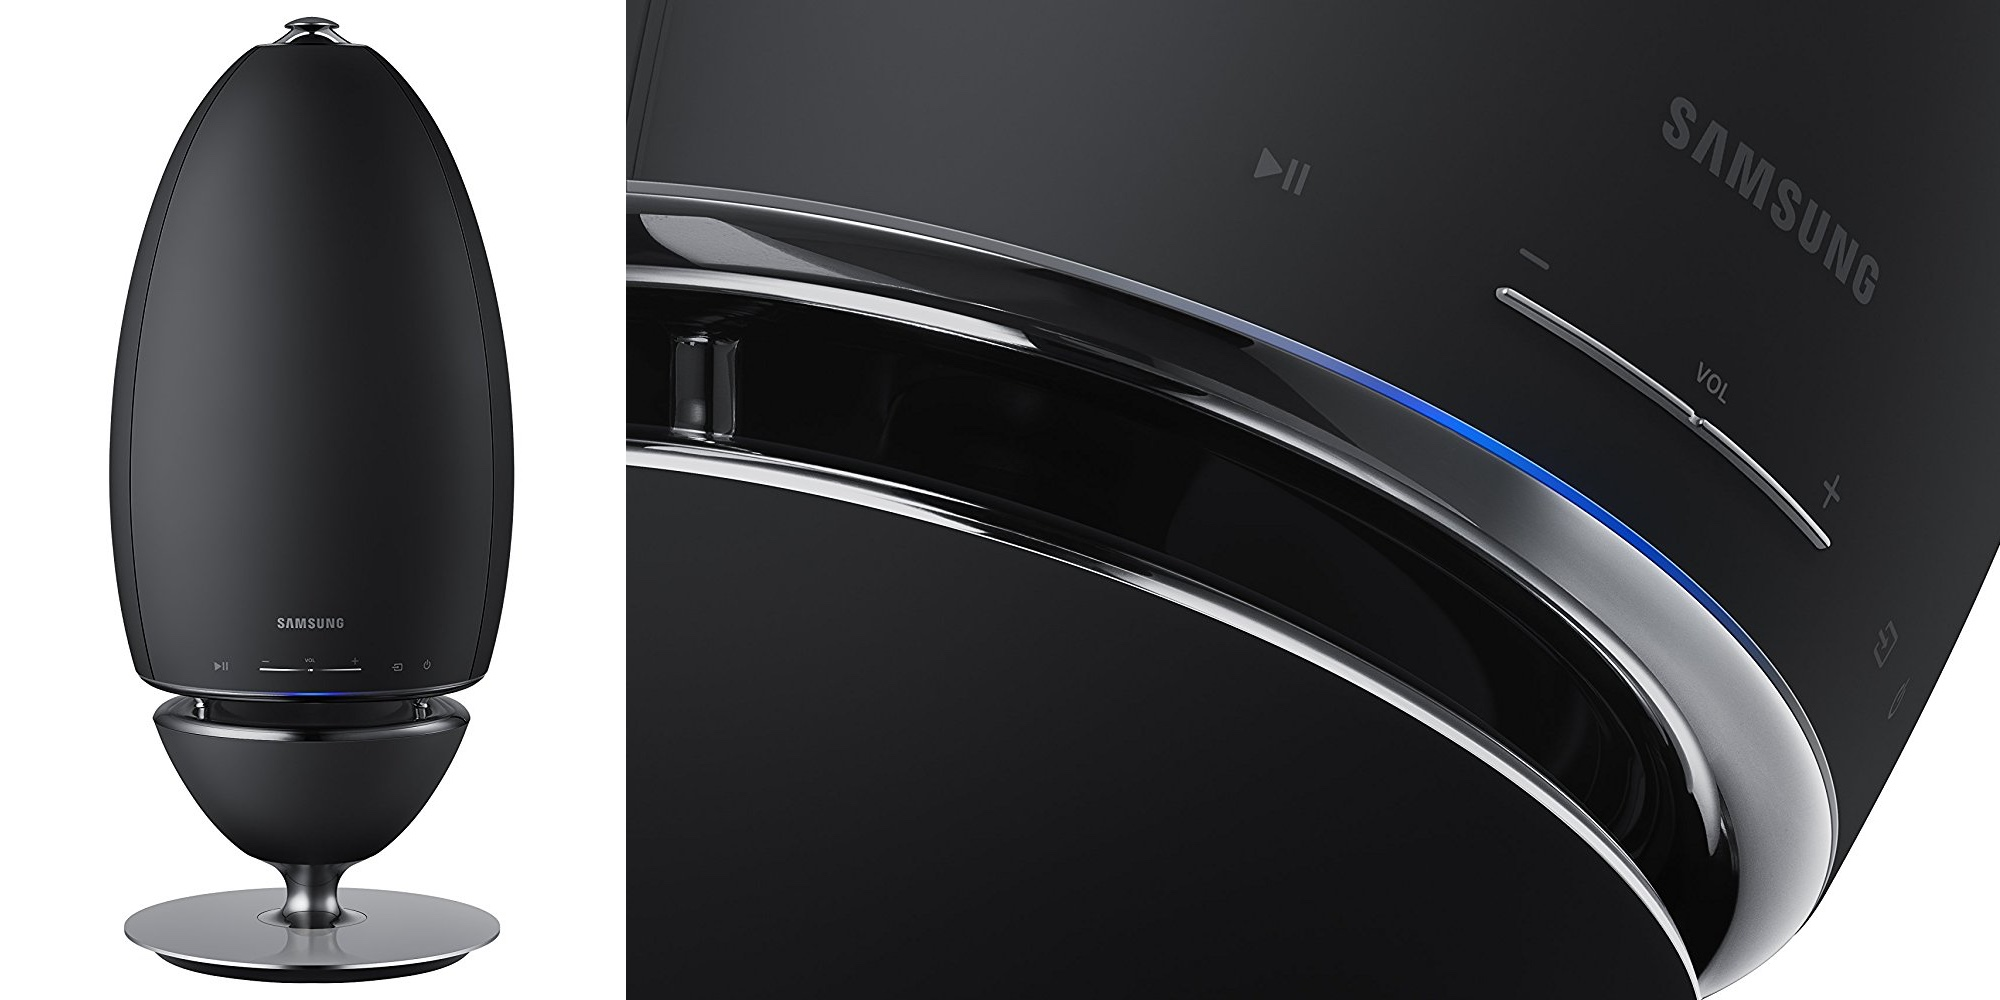 Get multi-room sound from the Samsung Radiant360 Speaker for $220